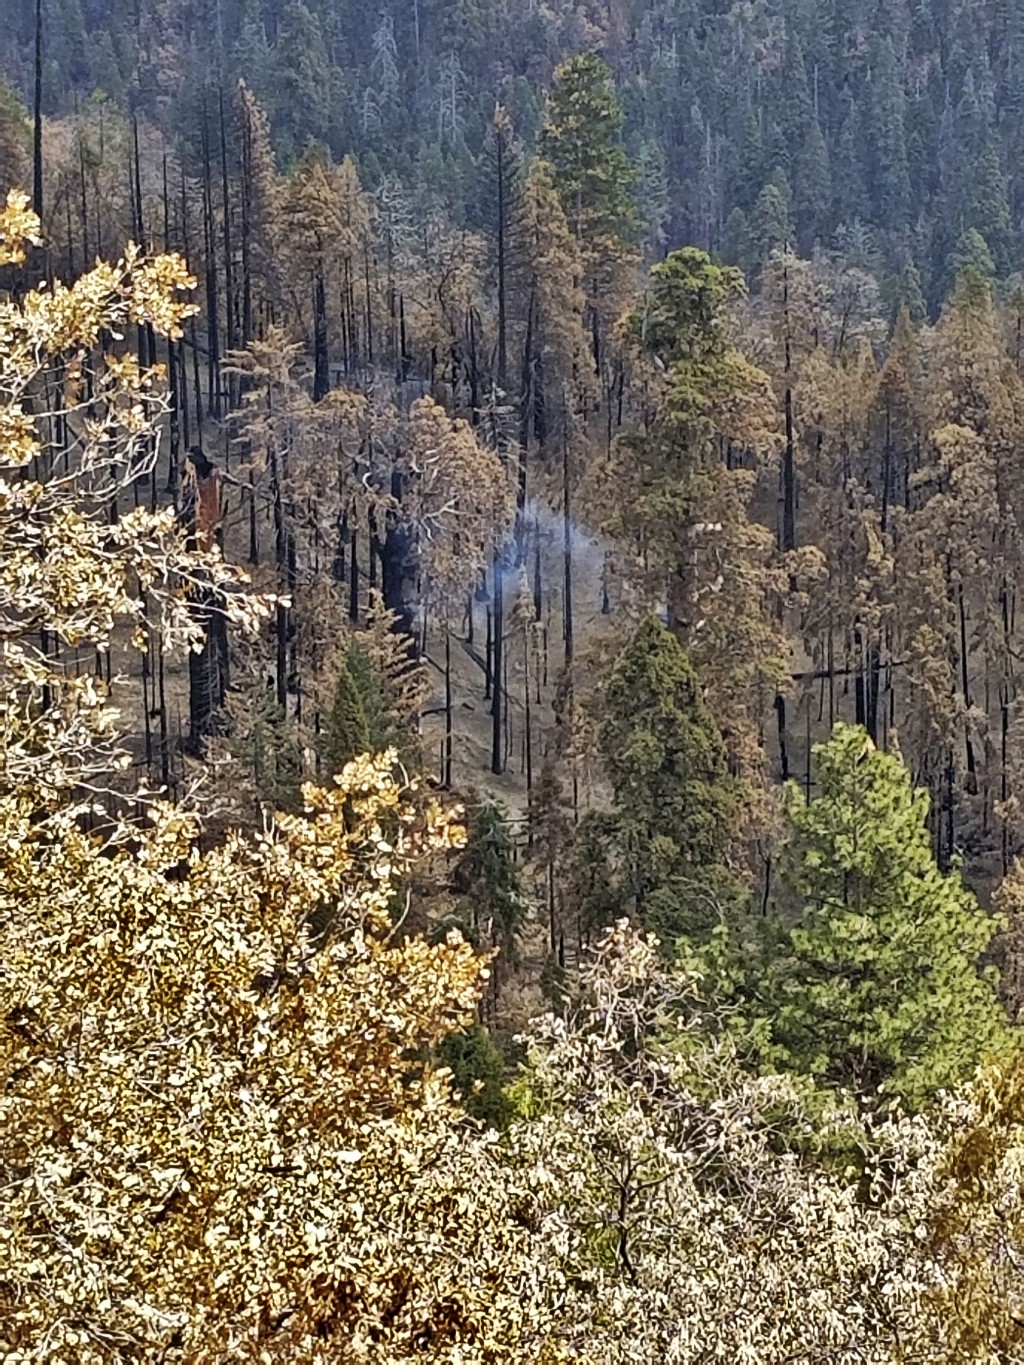 This photo provided by the National Park Service shows what appears to be a smoldering tree in Sequoia National Park, Calif., on April 22, 2021. A gia...